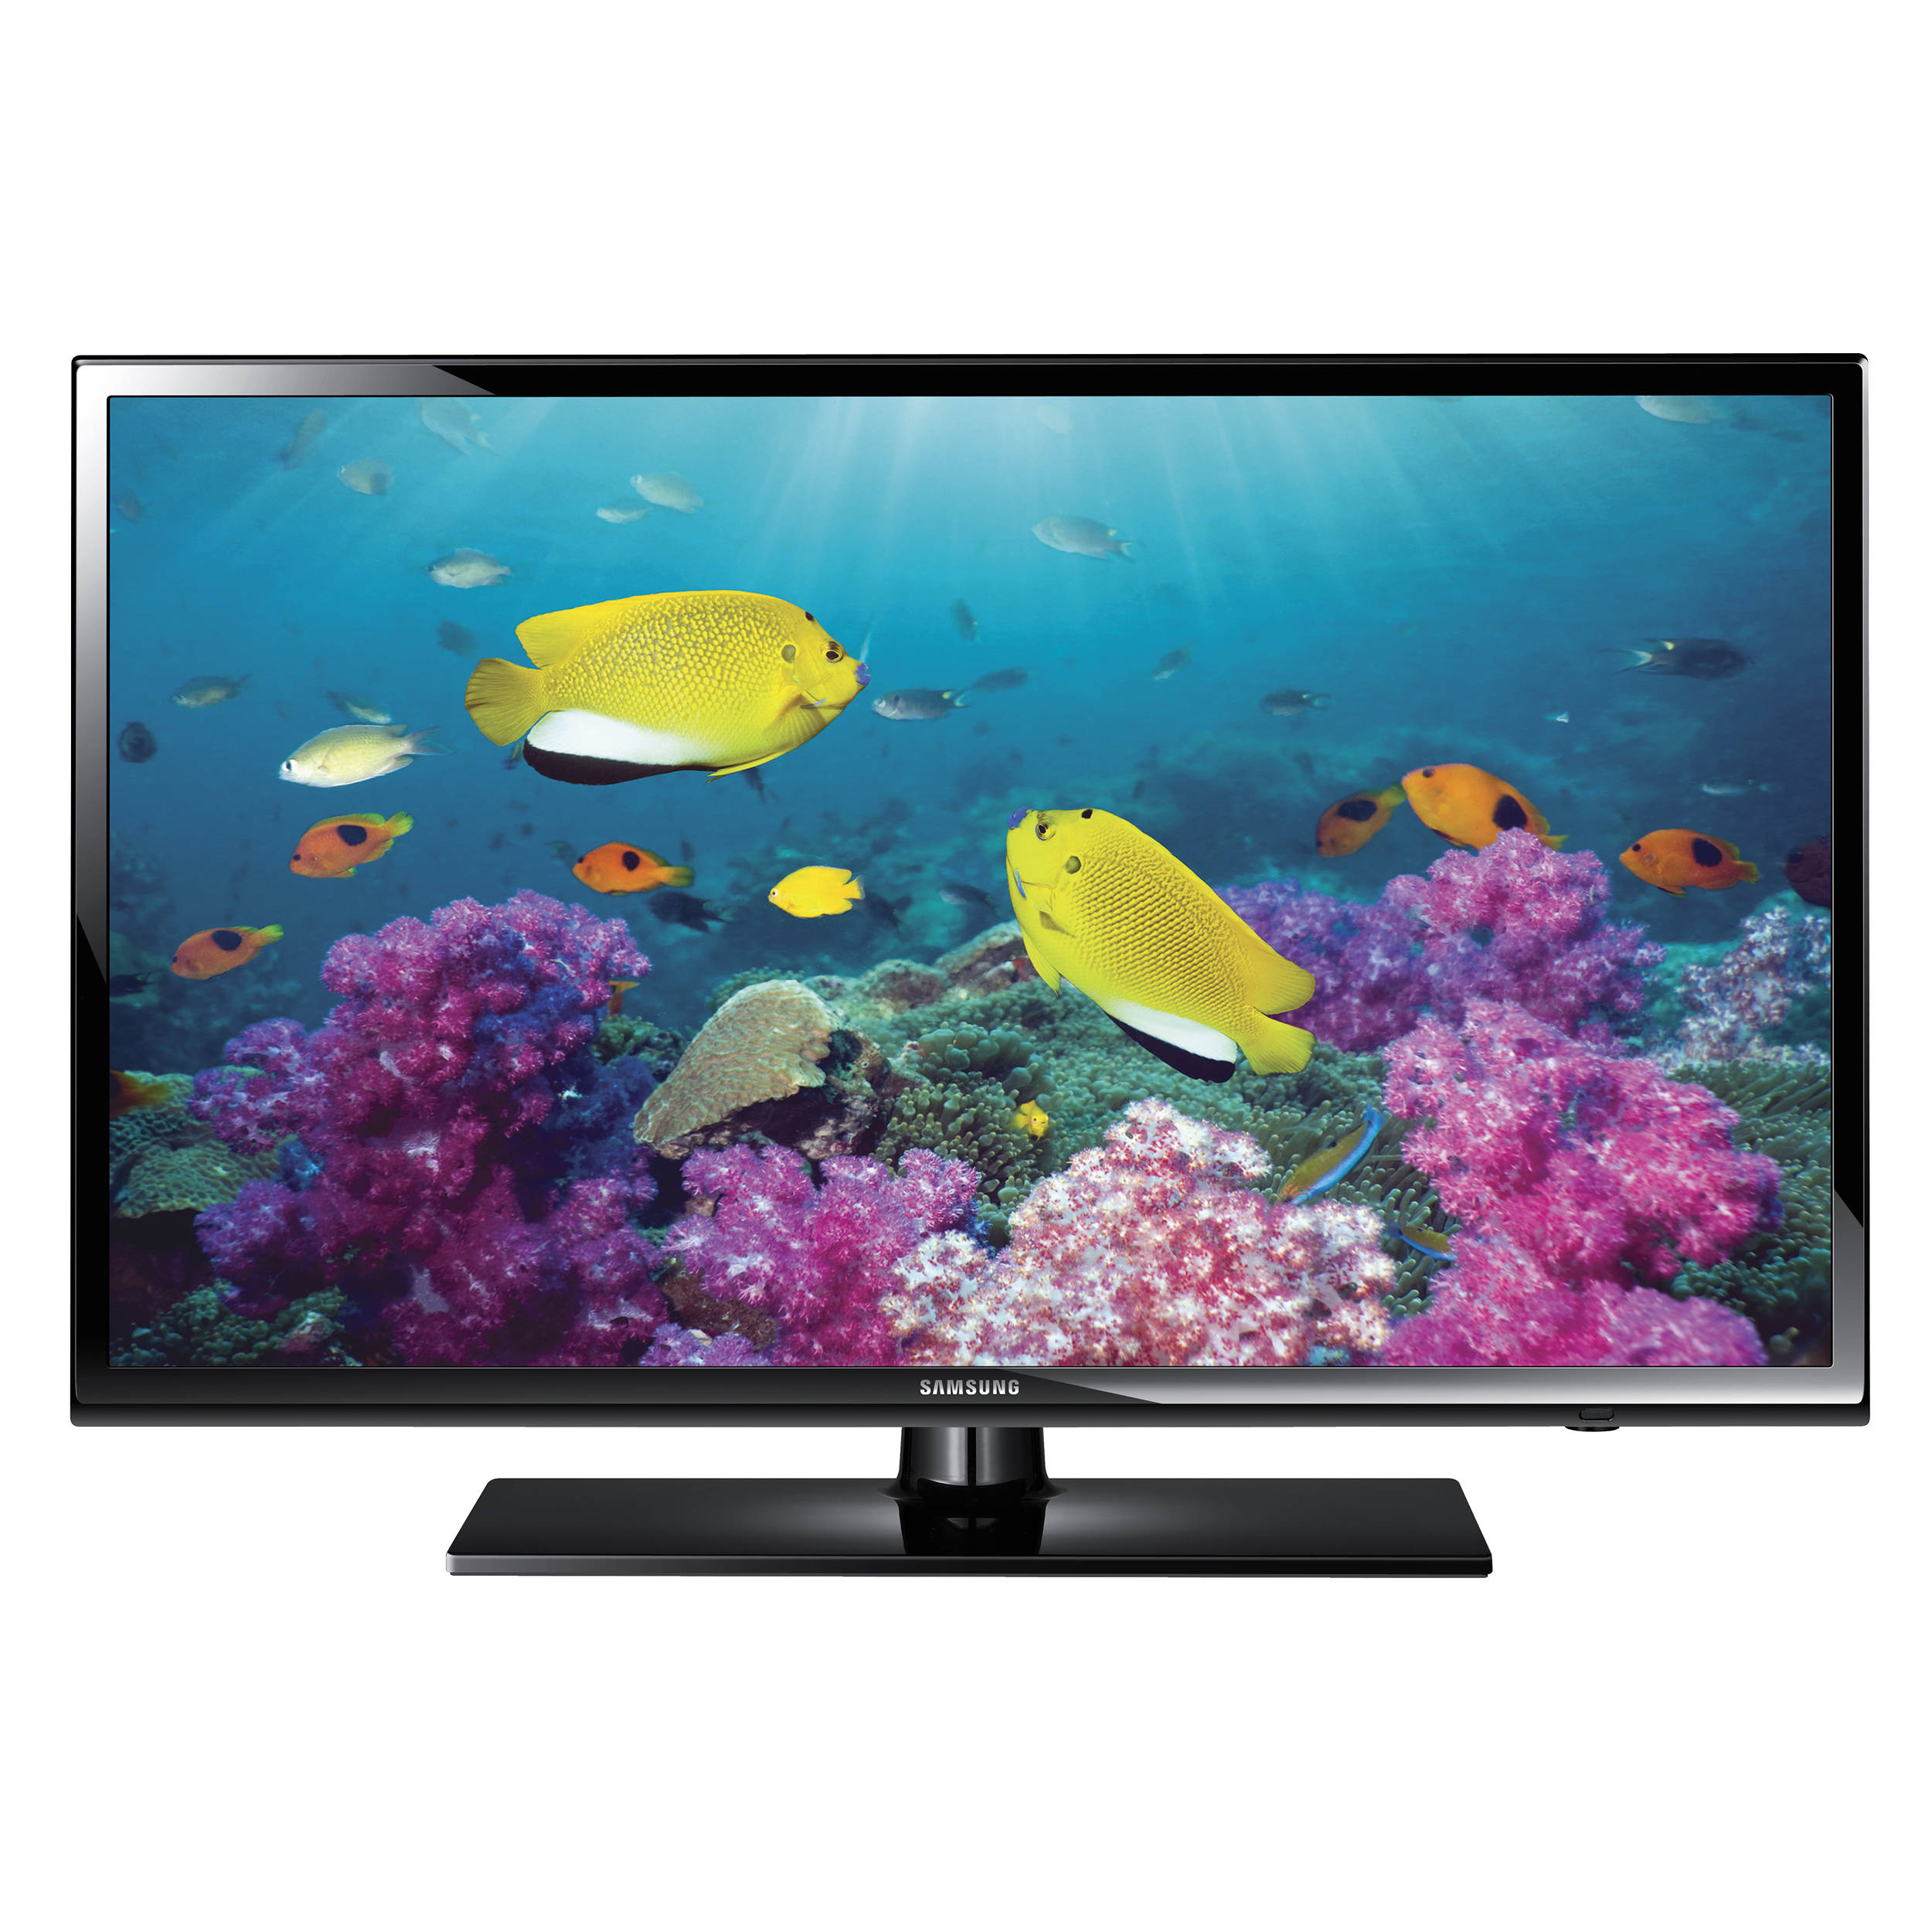 SAMSUNG UN39FH5000F LED TV WINDOWS XP DRIVER